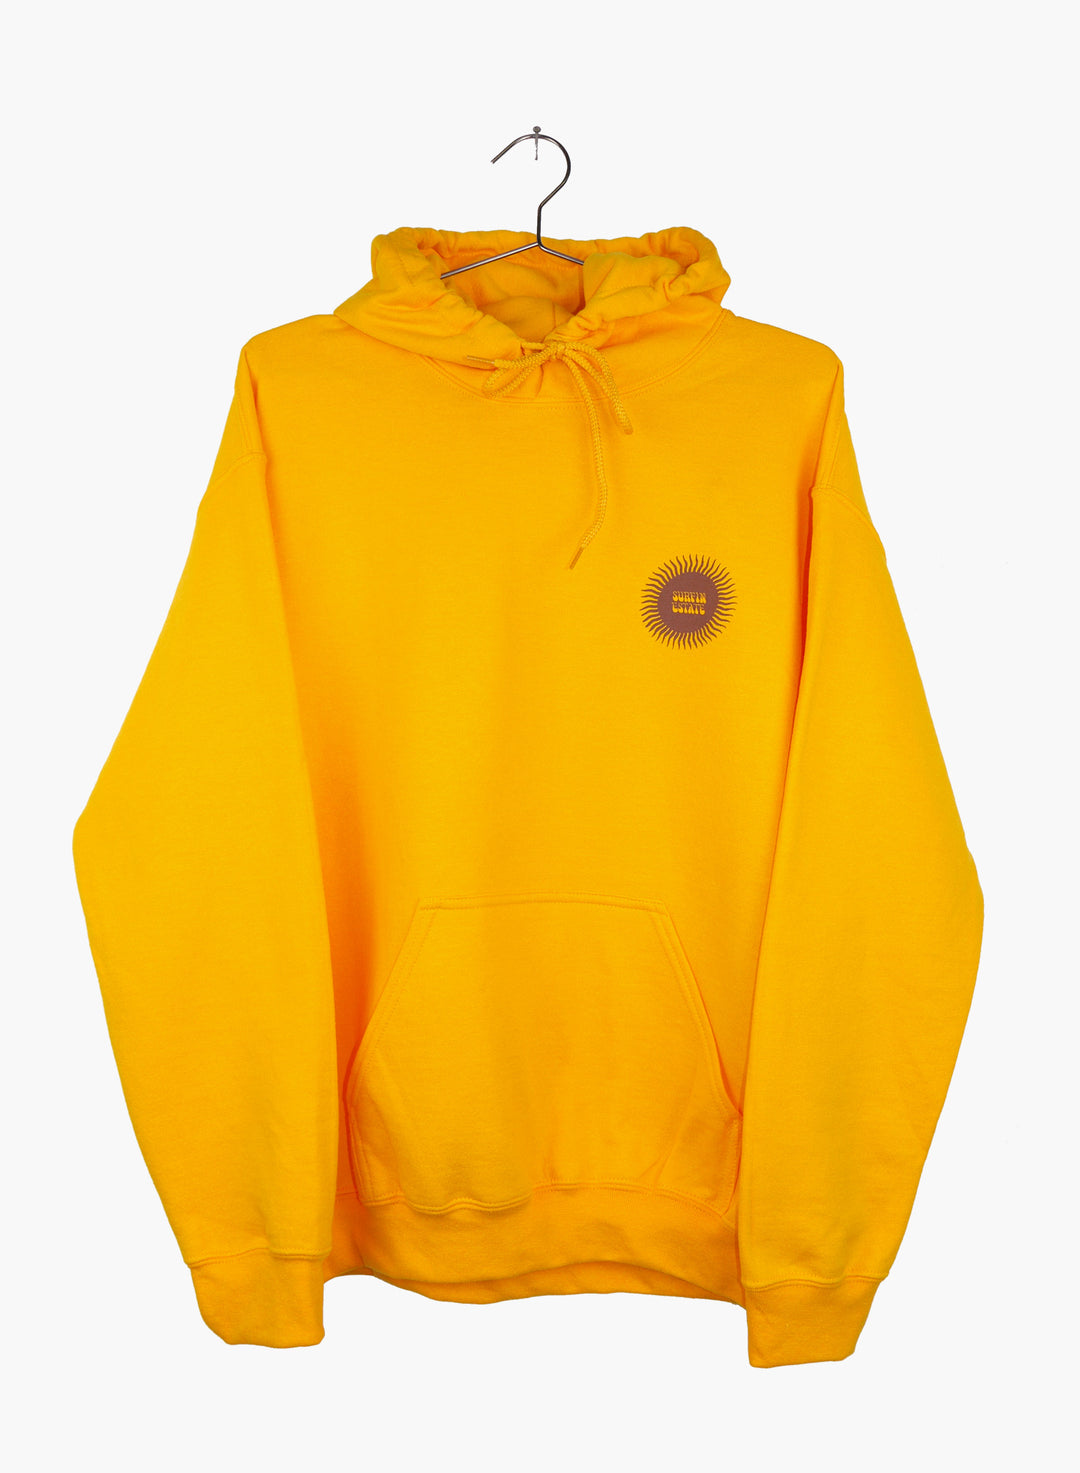 Surfin Estate sweat à capuche gold avec logo sérigraphié sunshine.